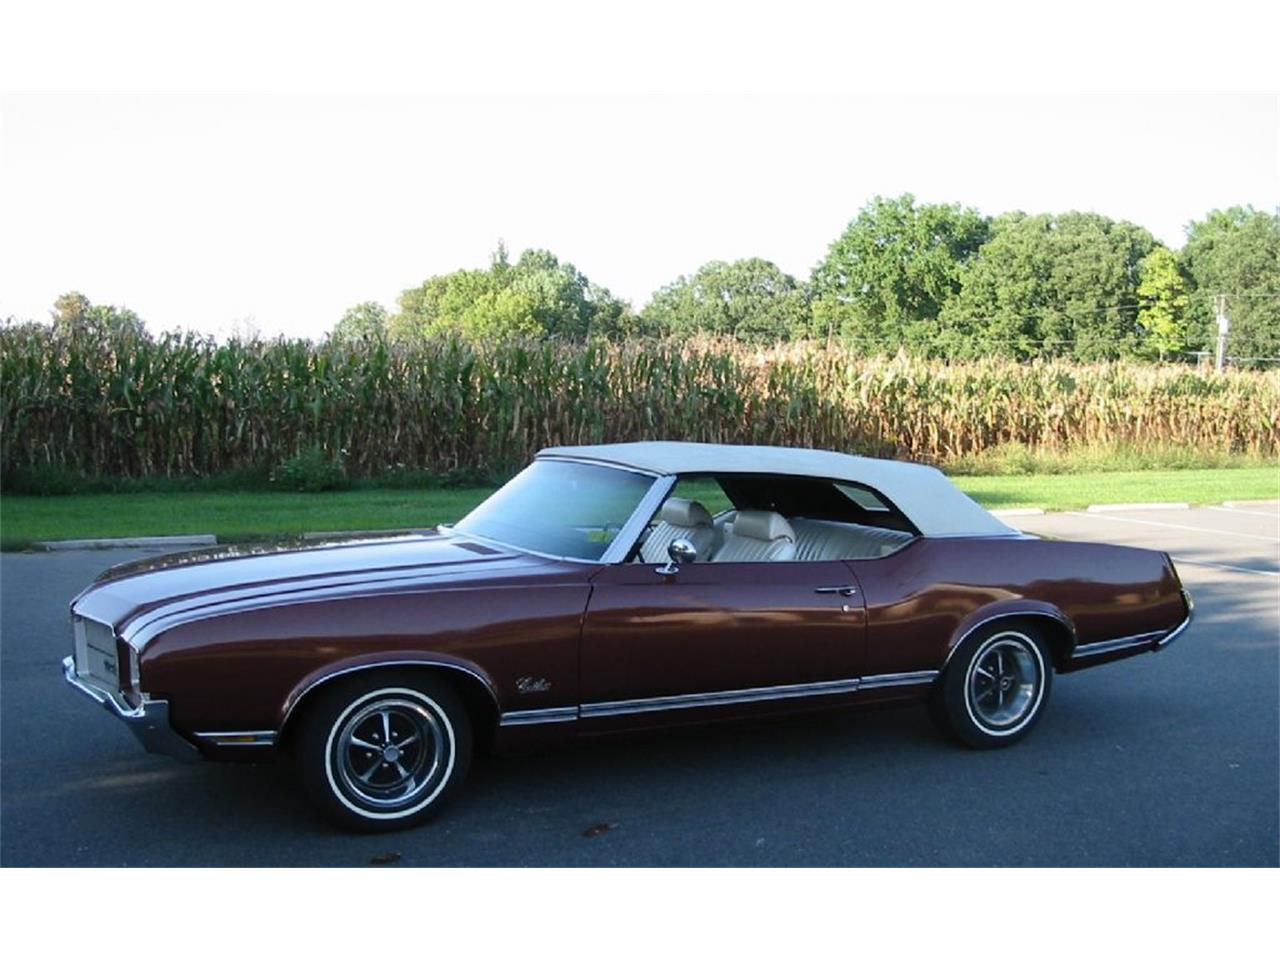 Large Picture of Classic 1971 Cutlass Supreme located in Harpers Ferry West Virginia - $29,500.00 Offered by Champion Pre-Owned Classics - L1WX